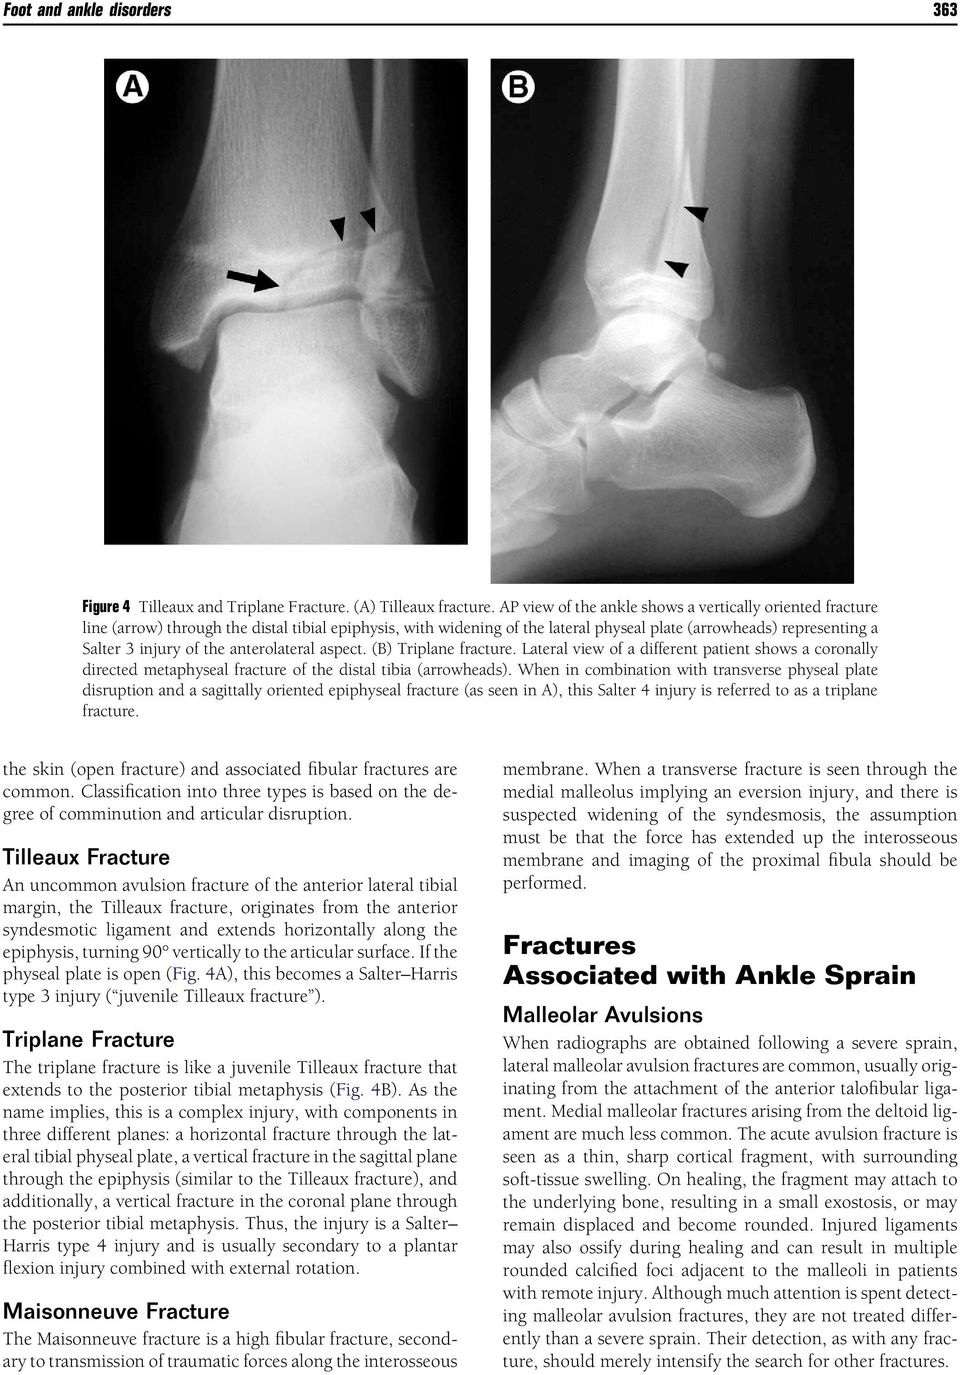 The foot and ankle are commonly imaged for a variety of - PDF